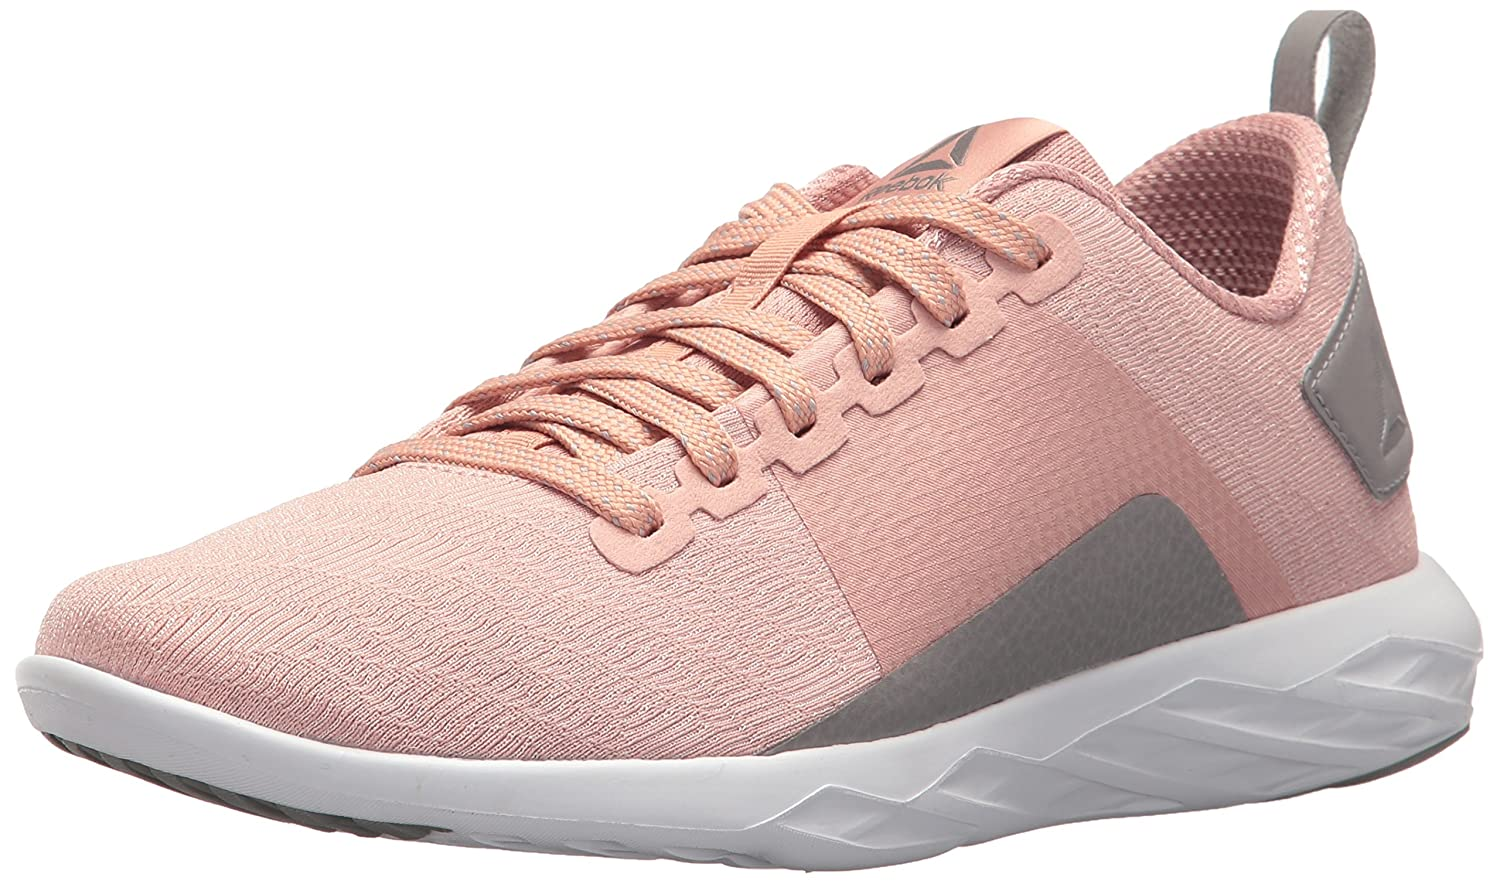 Reebok レディース B0714M64ZM 8.5 B(M) US|Chalk Pink/Powder Grey/White Chalk Pink/Powder Grey/White 8.5 B(M) US